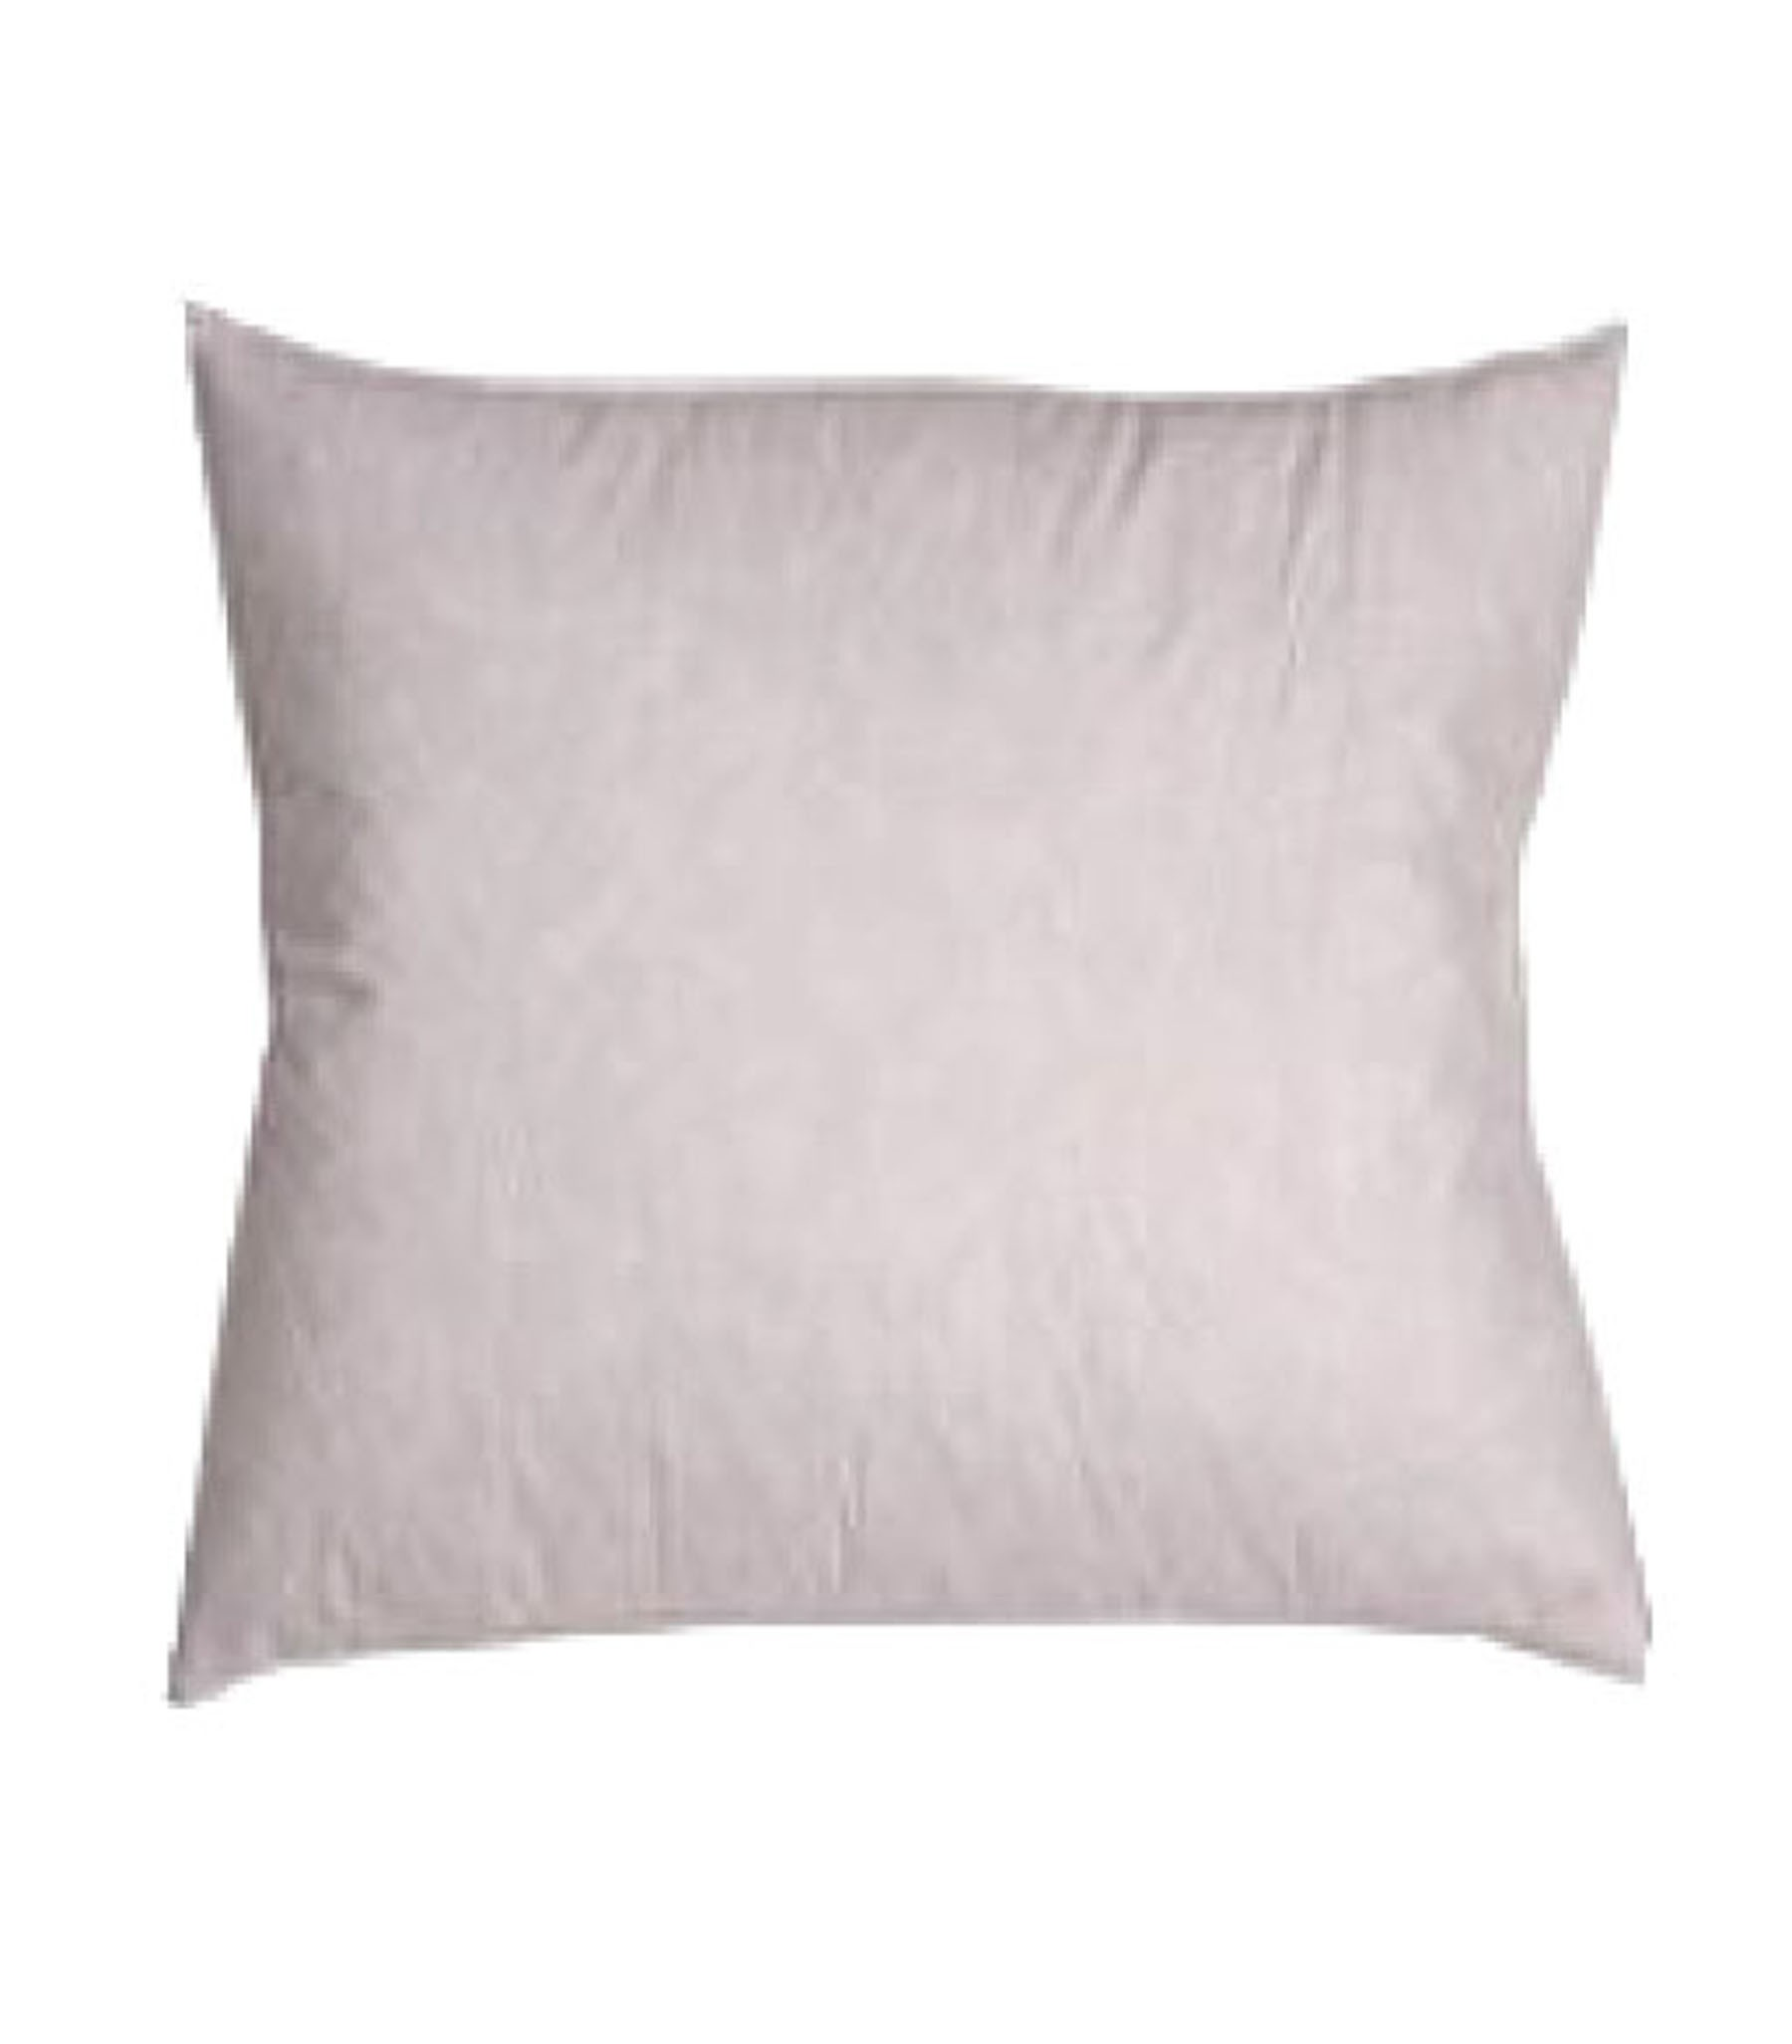 Cotton Covered Square Pillow Insert